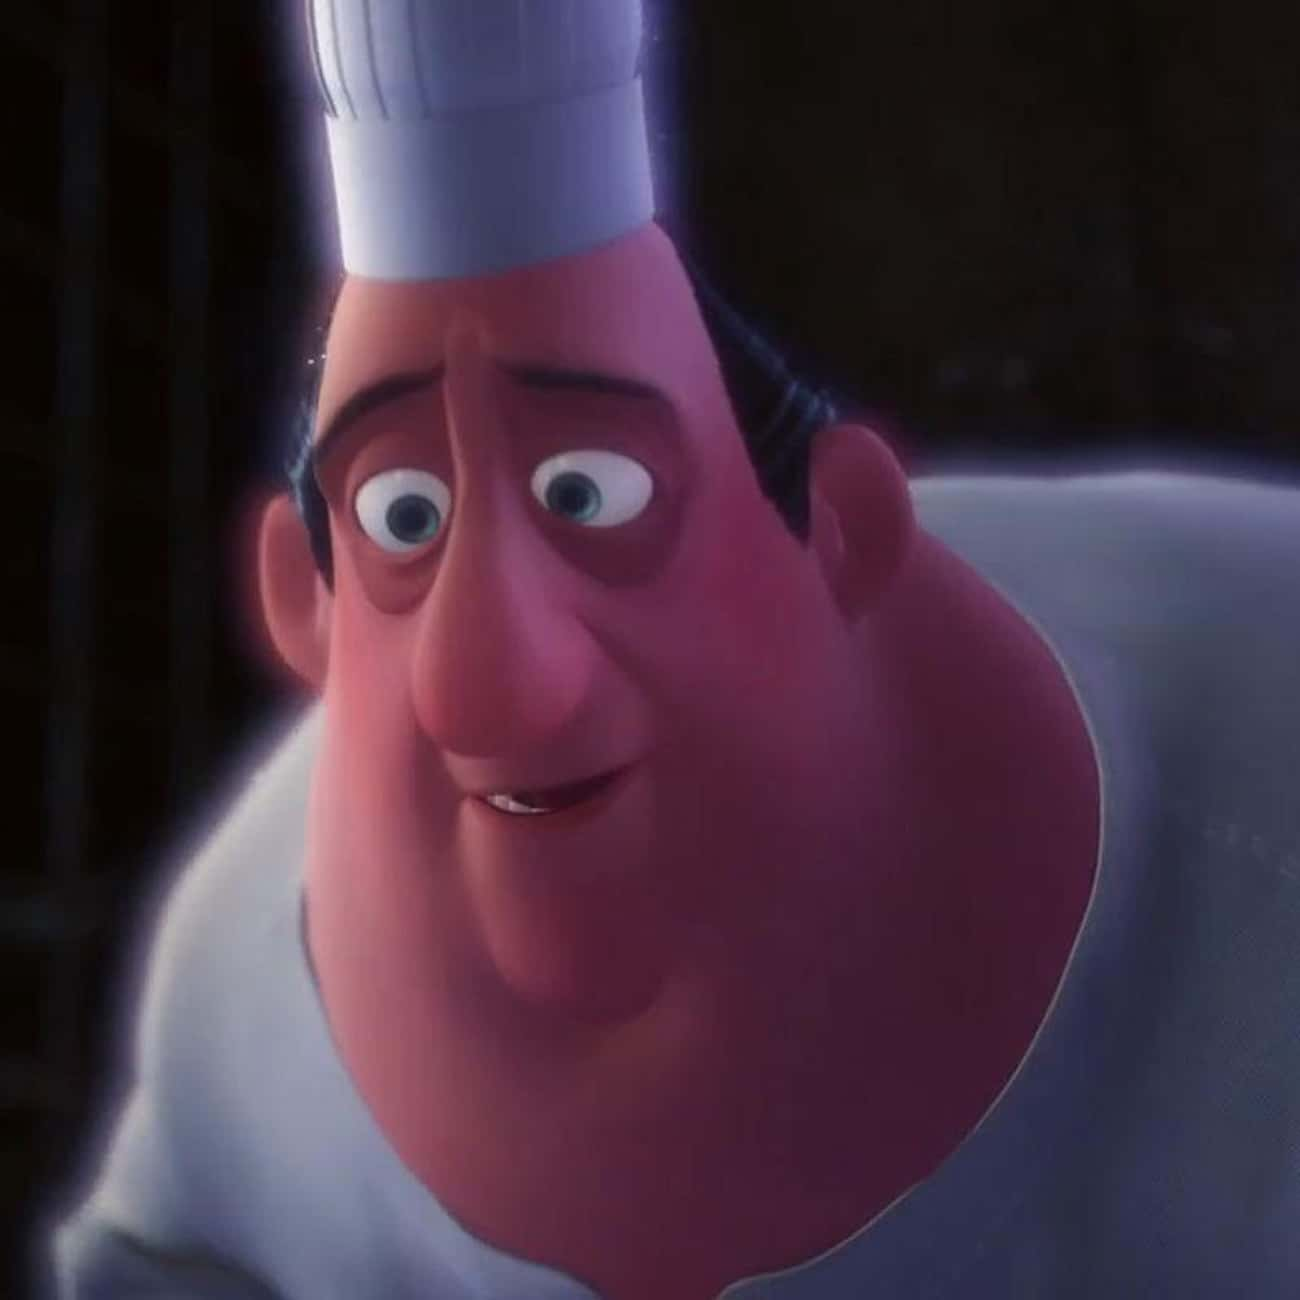 What Lies Ahead is listed (or ranked) 1 on the list The Best 'Ratatouille' Quotes